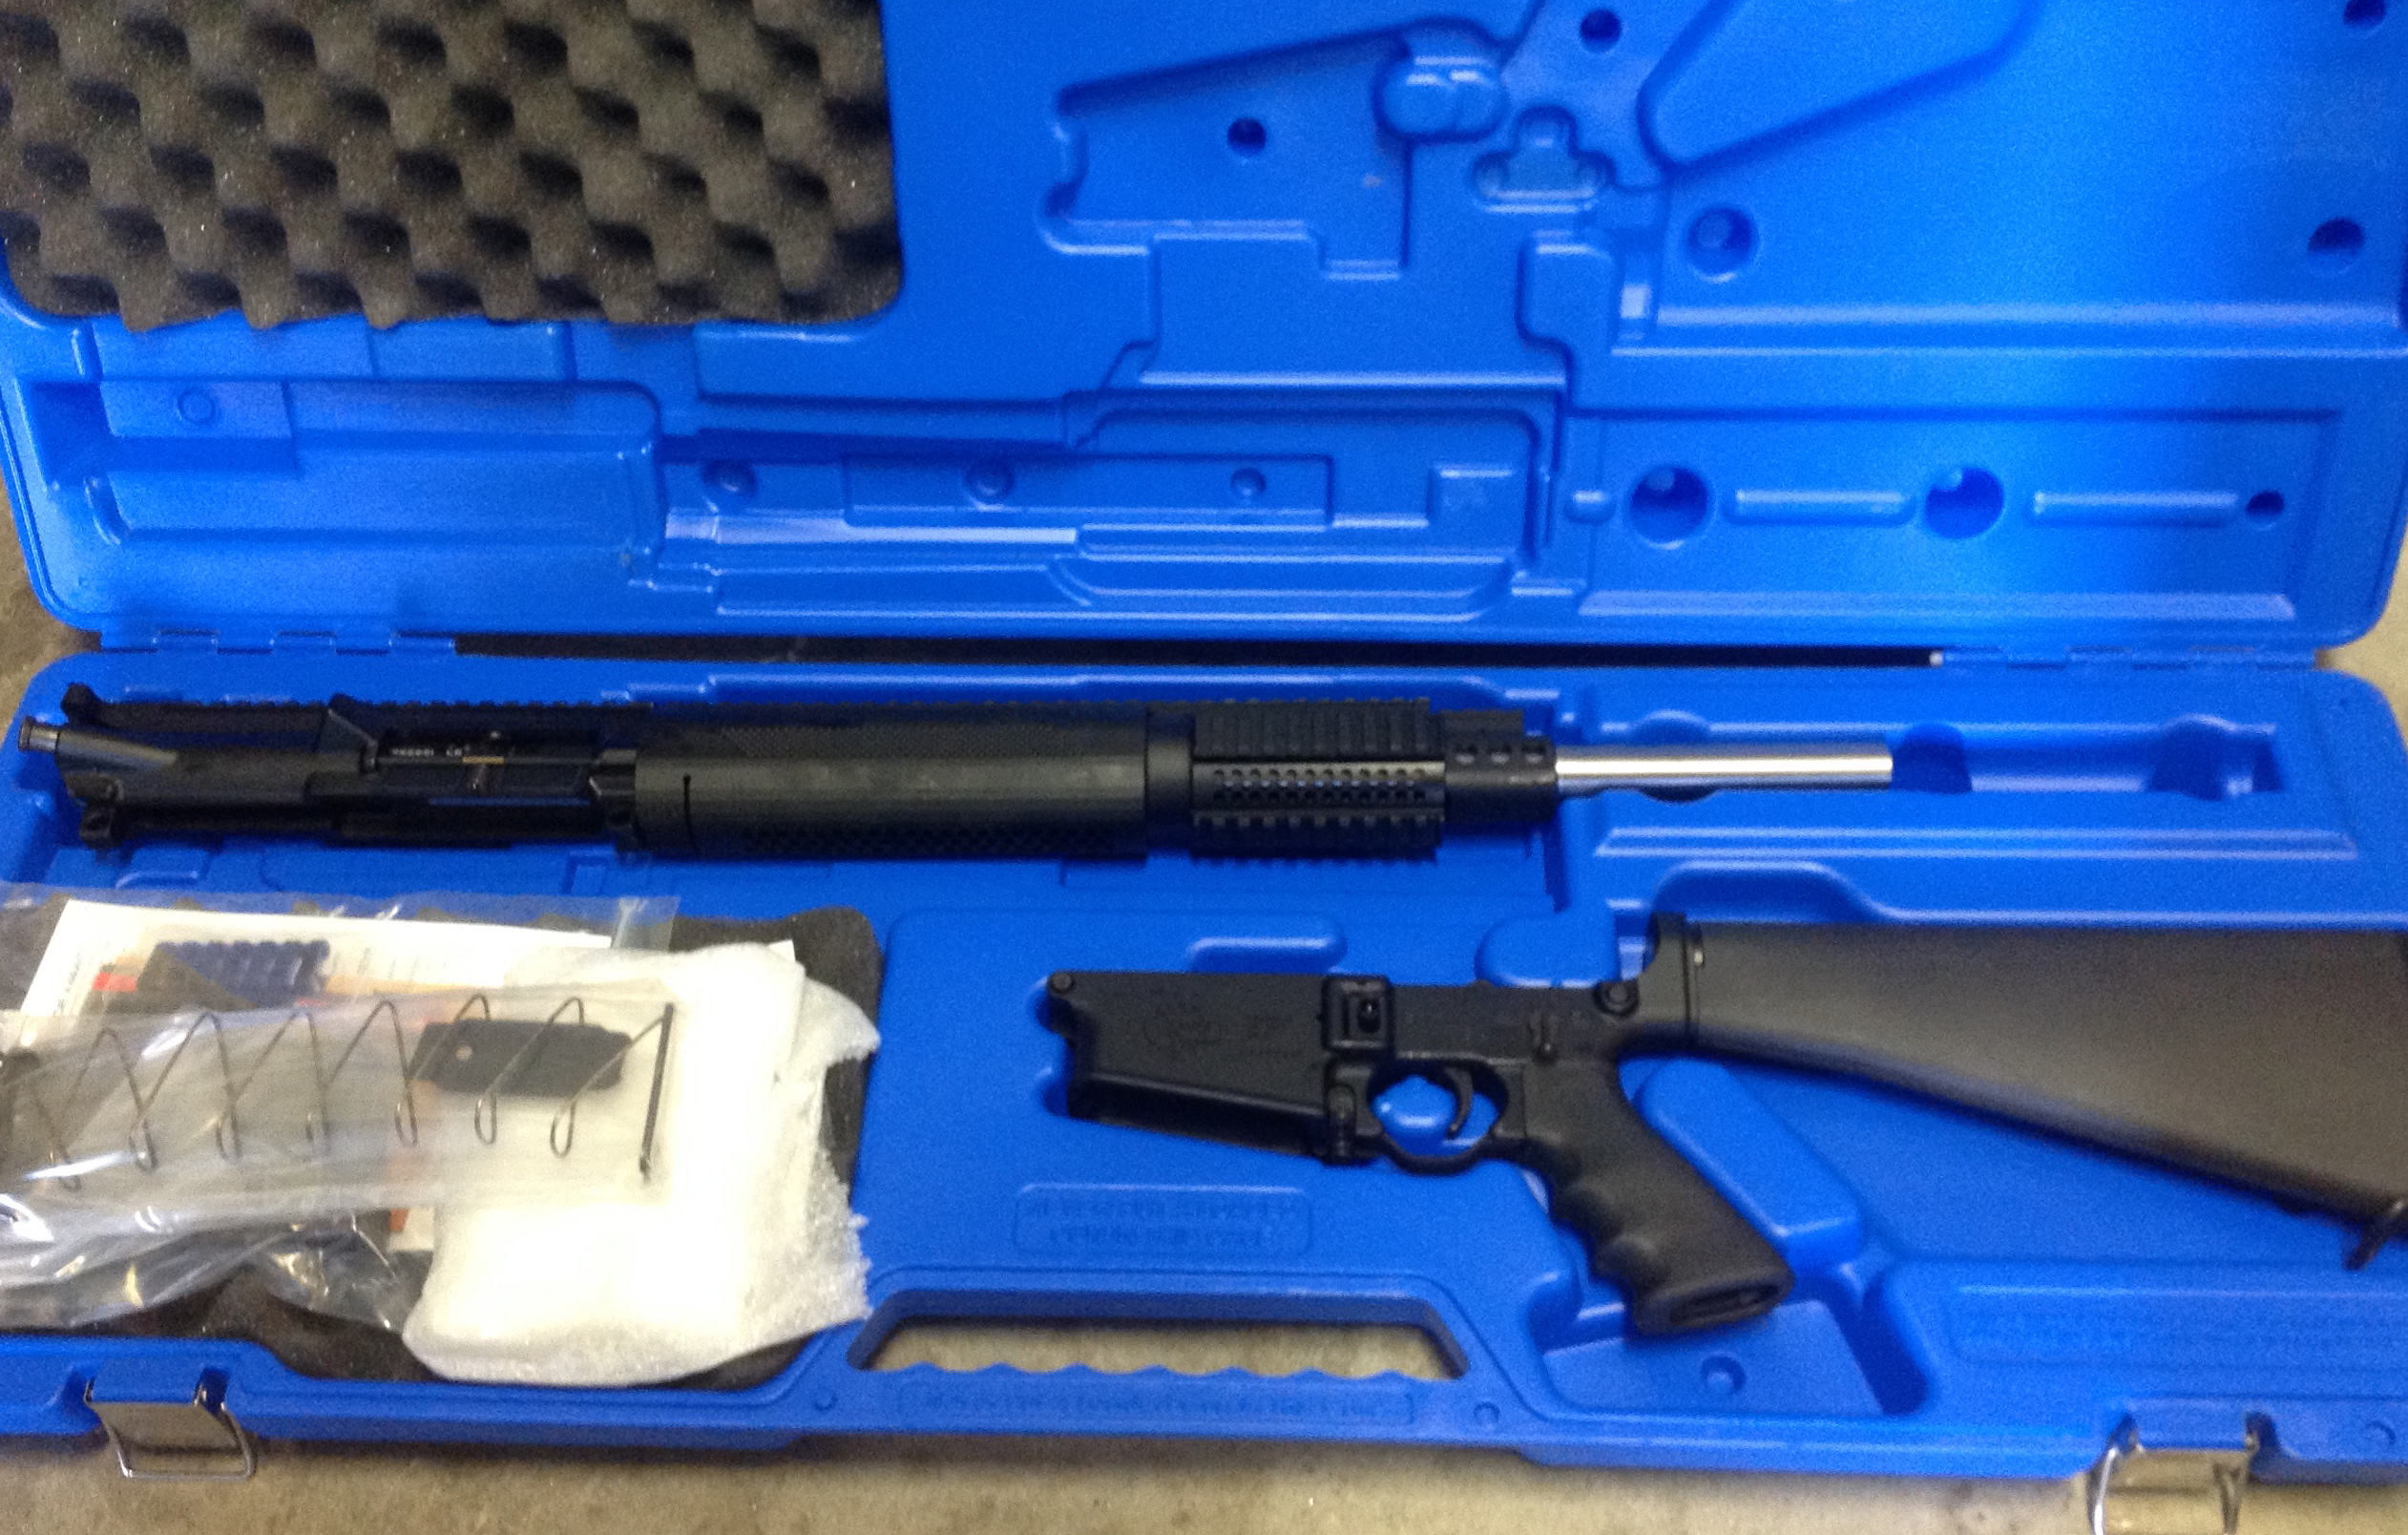 FEATURED RIFLE FOR SALE!